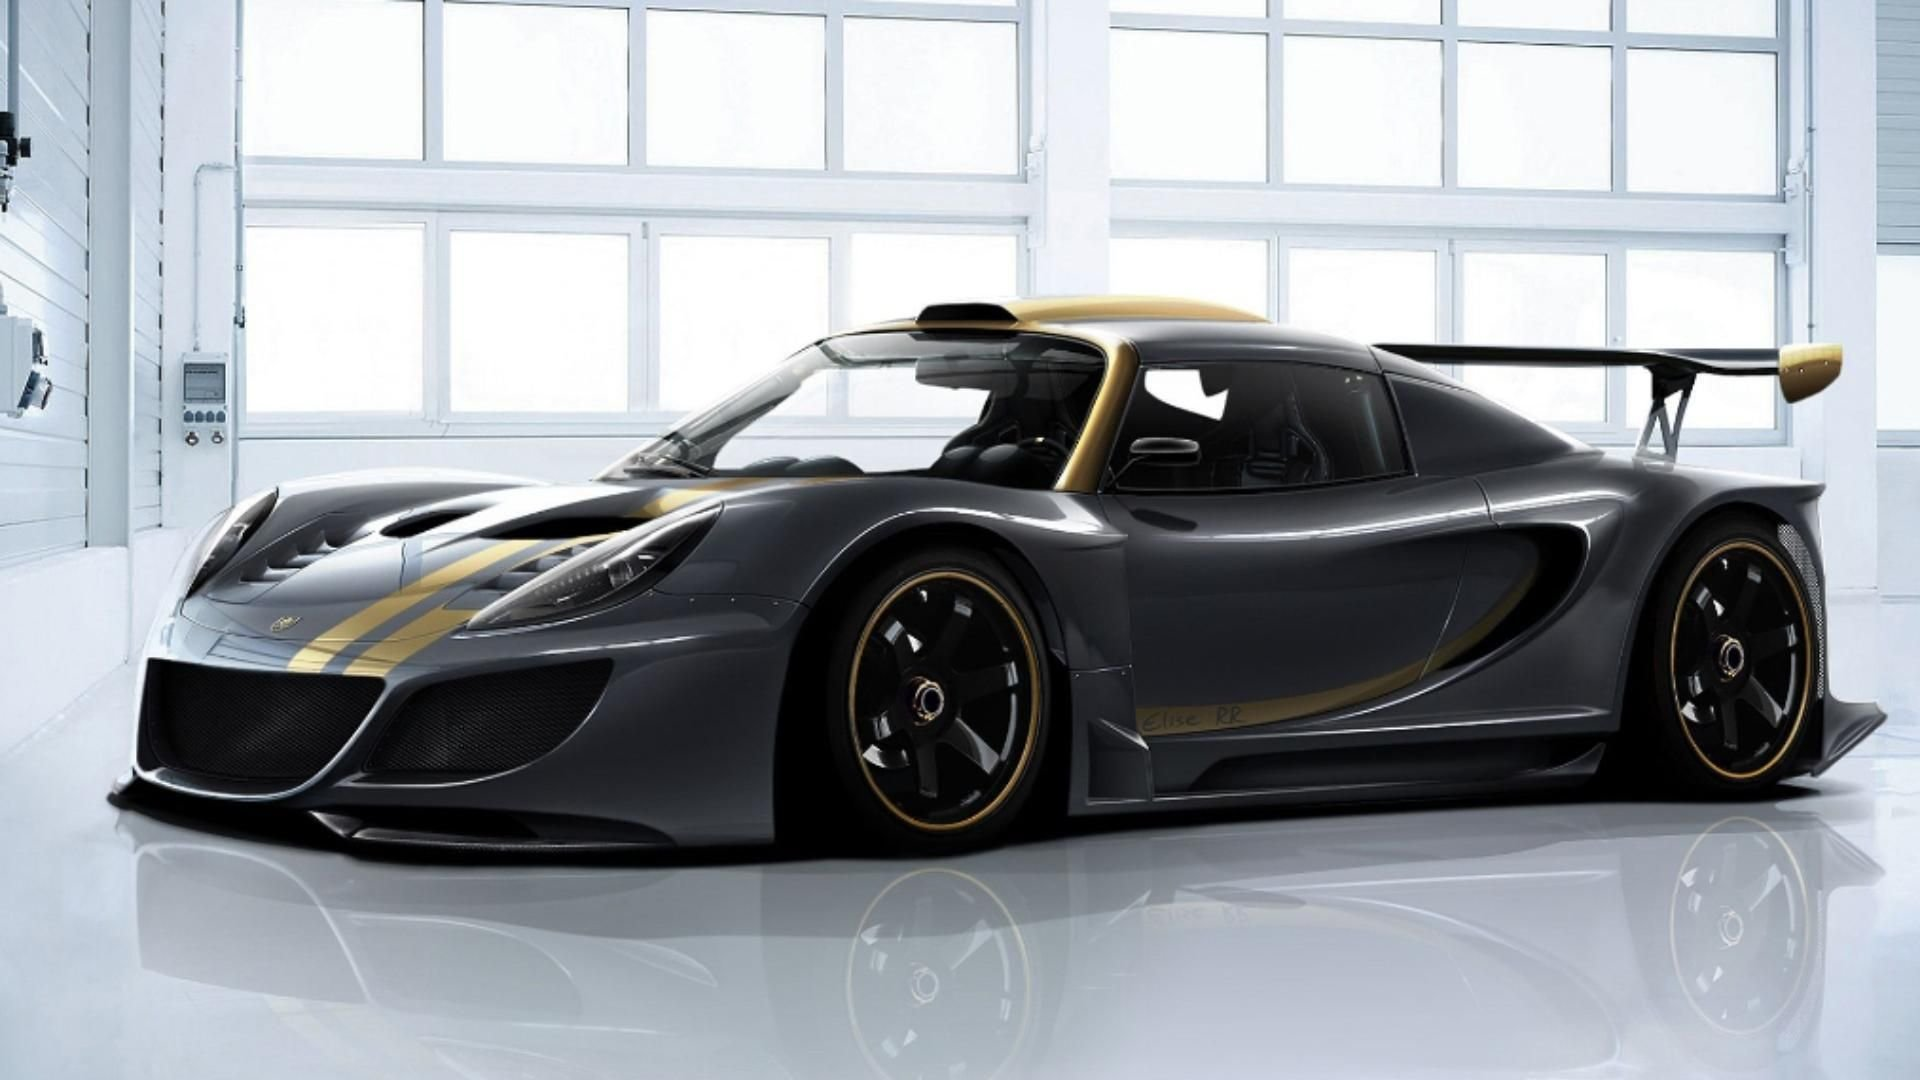 Latest Black Lotus Elise Rr Roadster For Super Speed Rac Car In Free Download